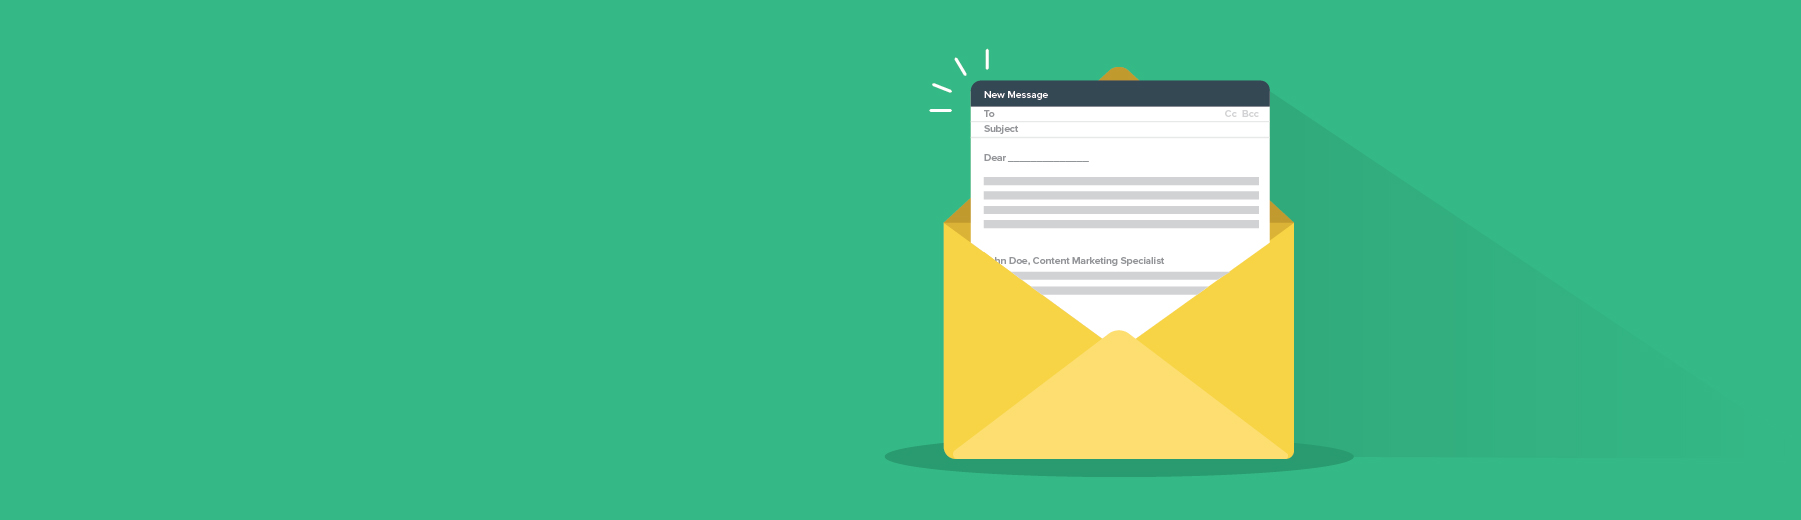 Everything you need to know about B2B email marketing in 2019 | Brafton